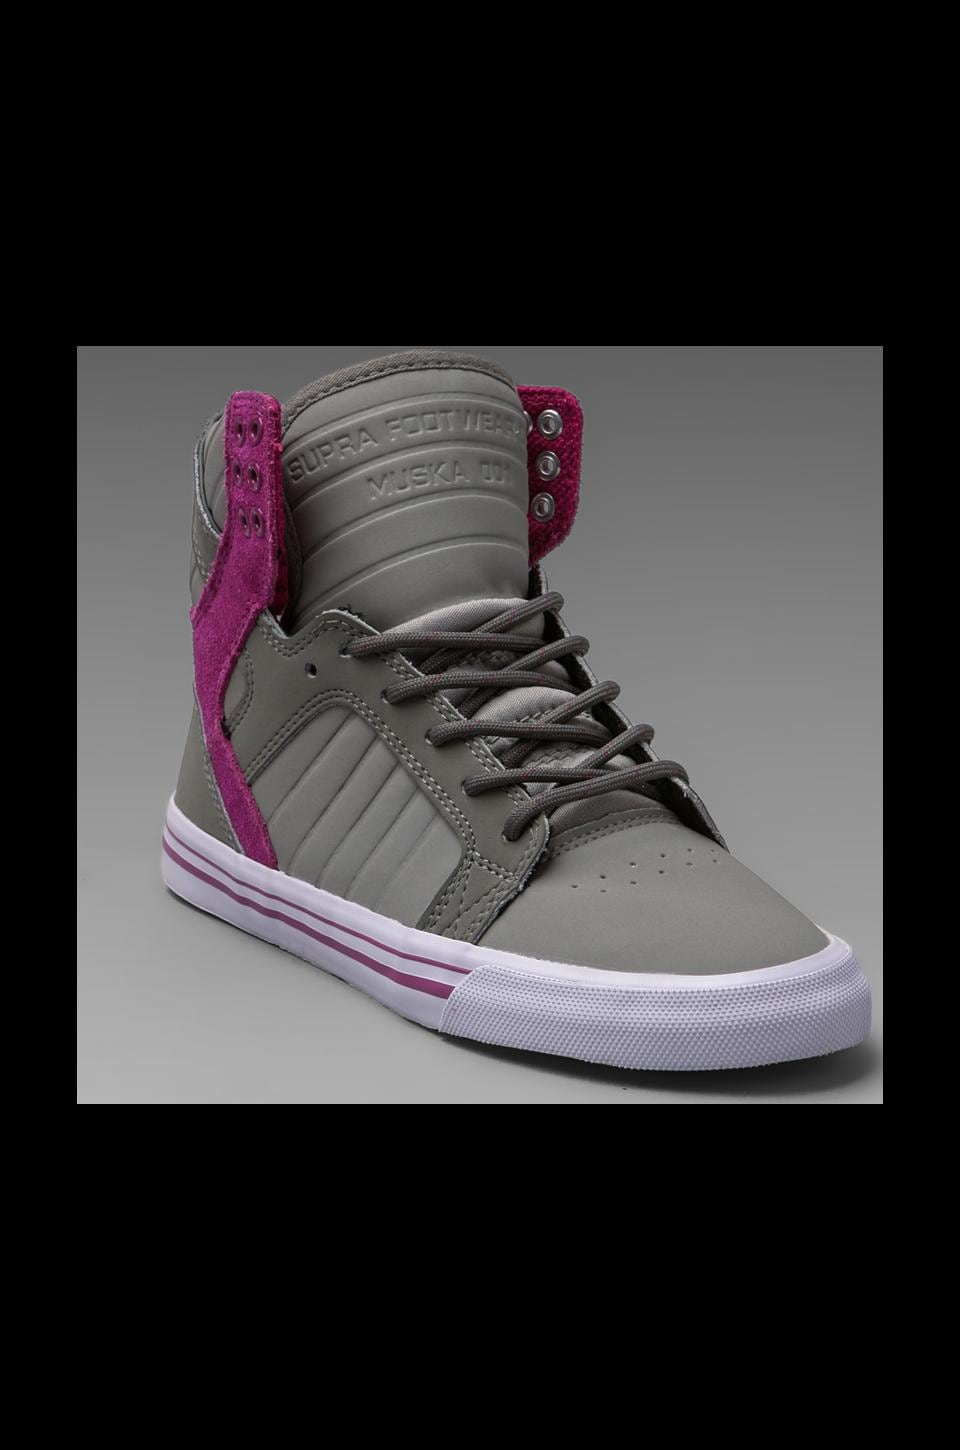 Supra Skytop Sneaker in Grey/Purple